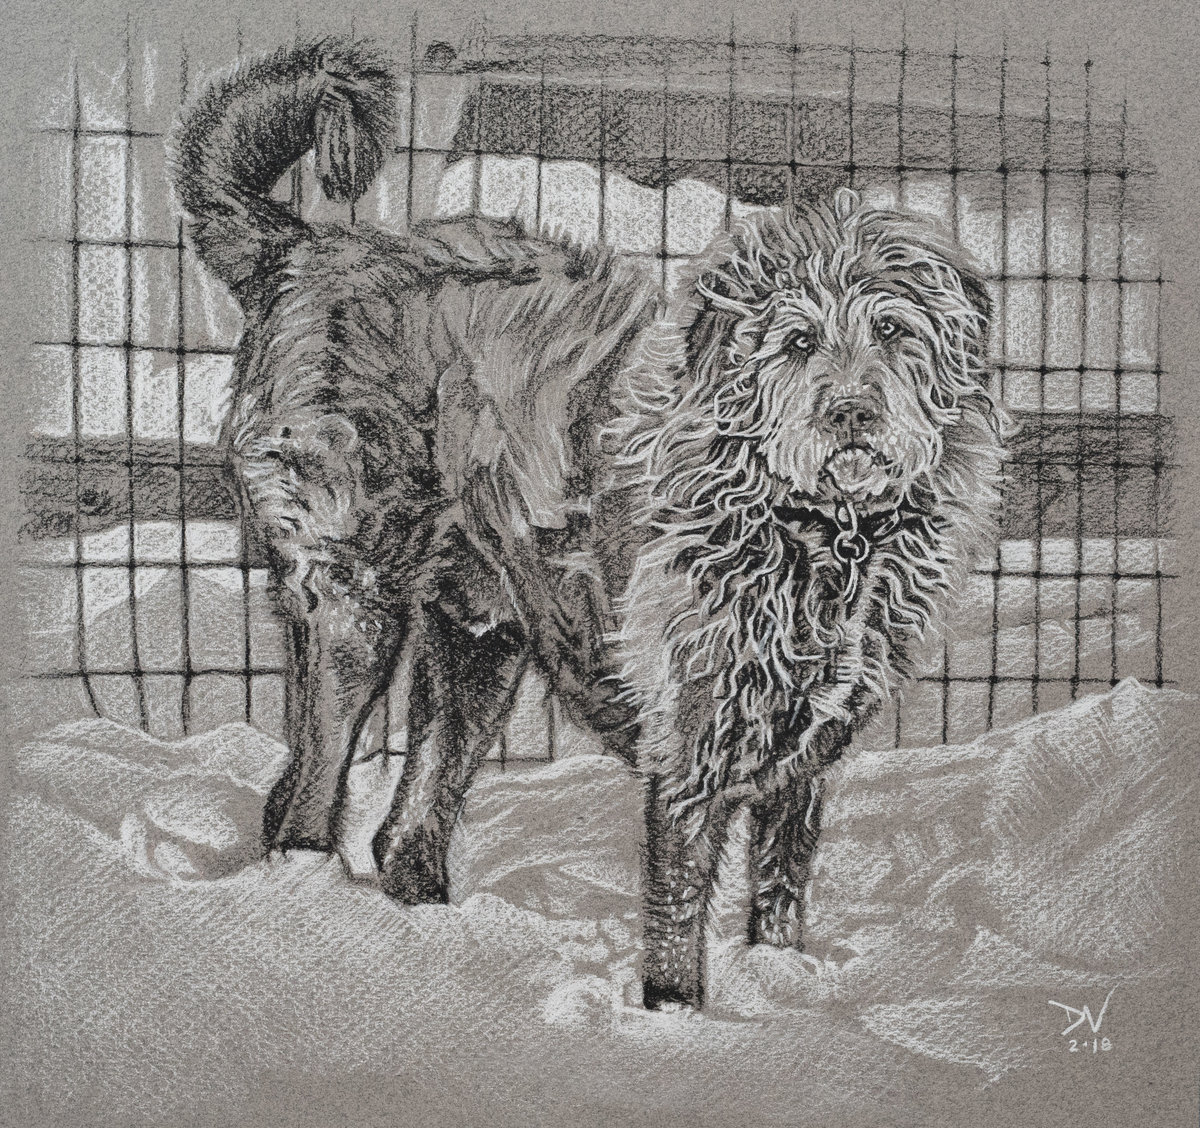 2018-02 Buddy Pup - 9.5X9 - charcoal on paper - SA